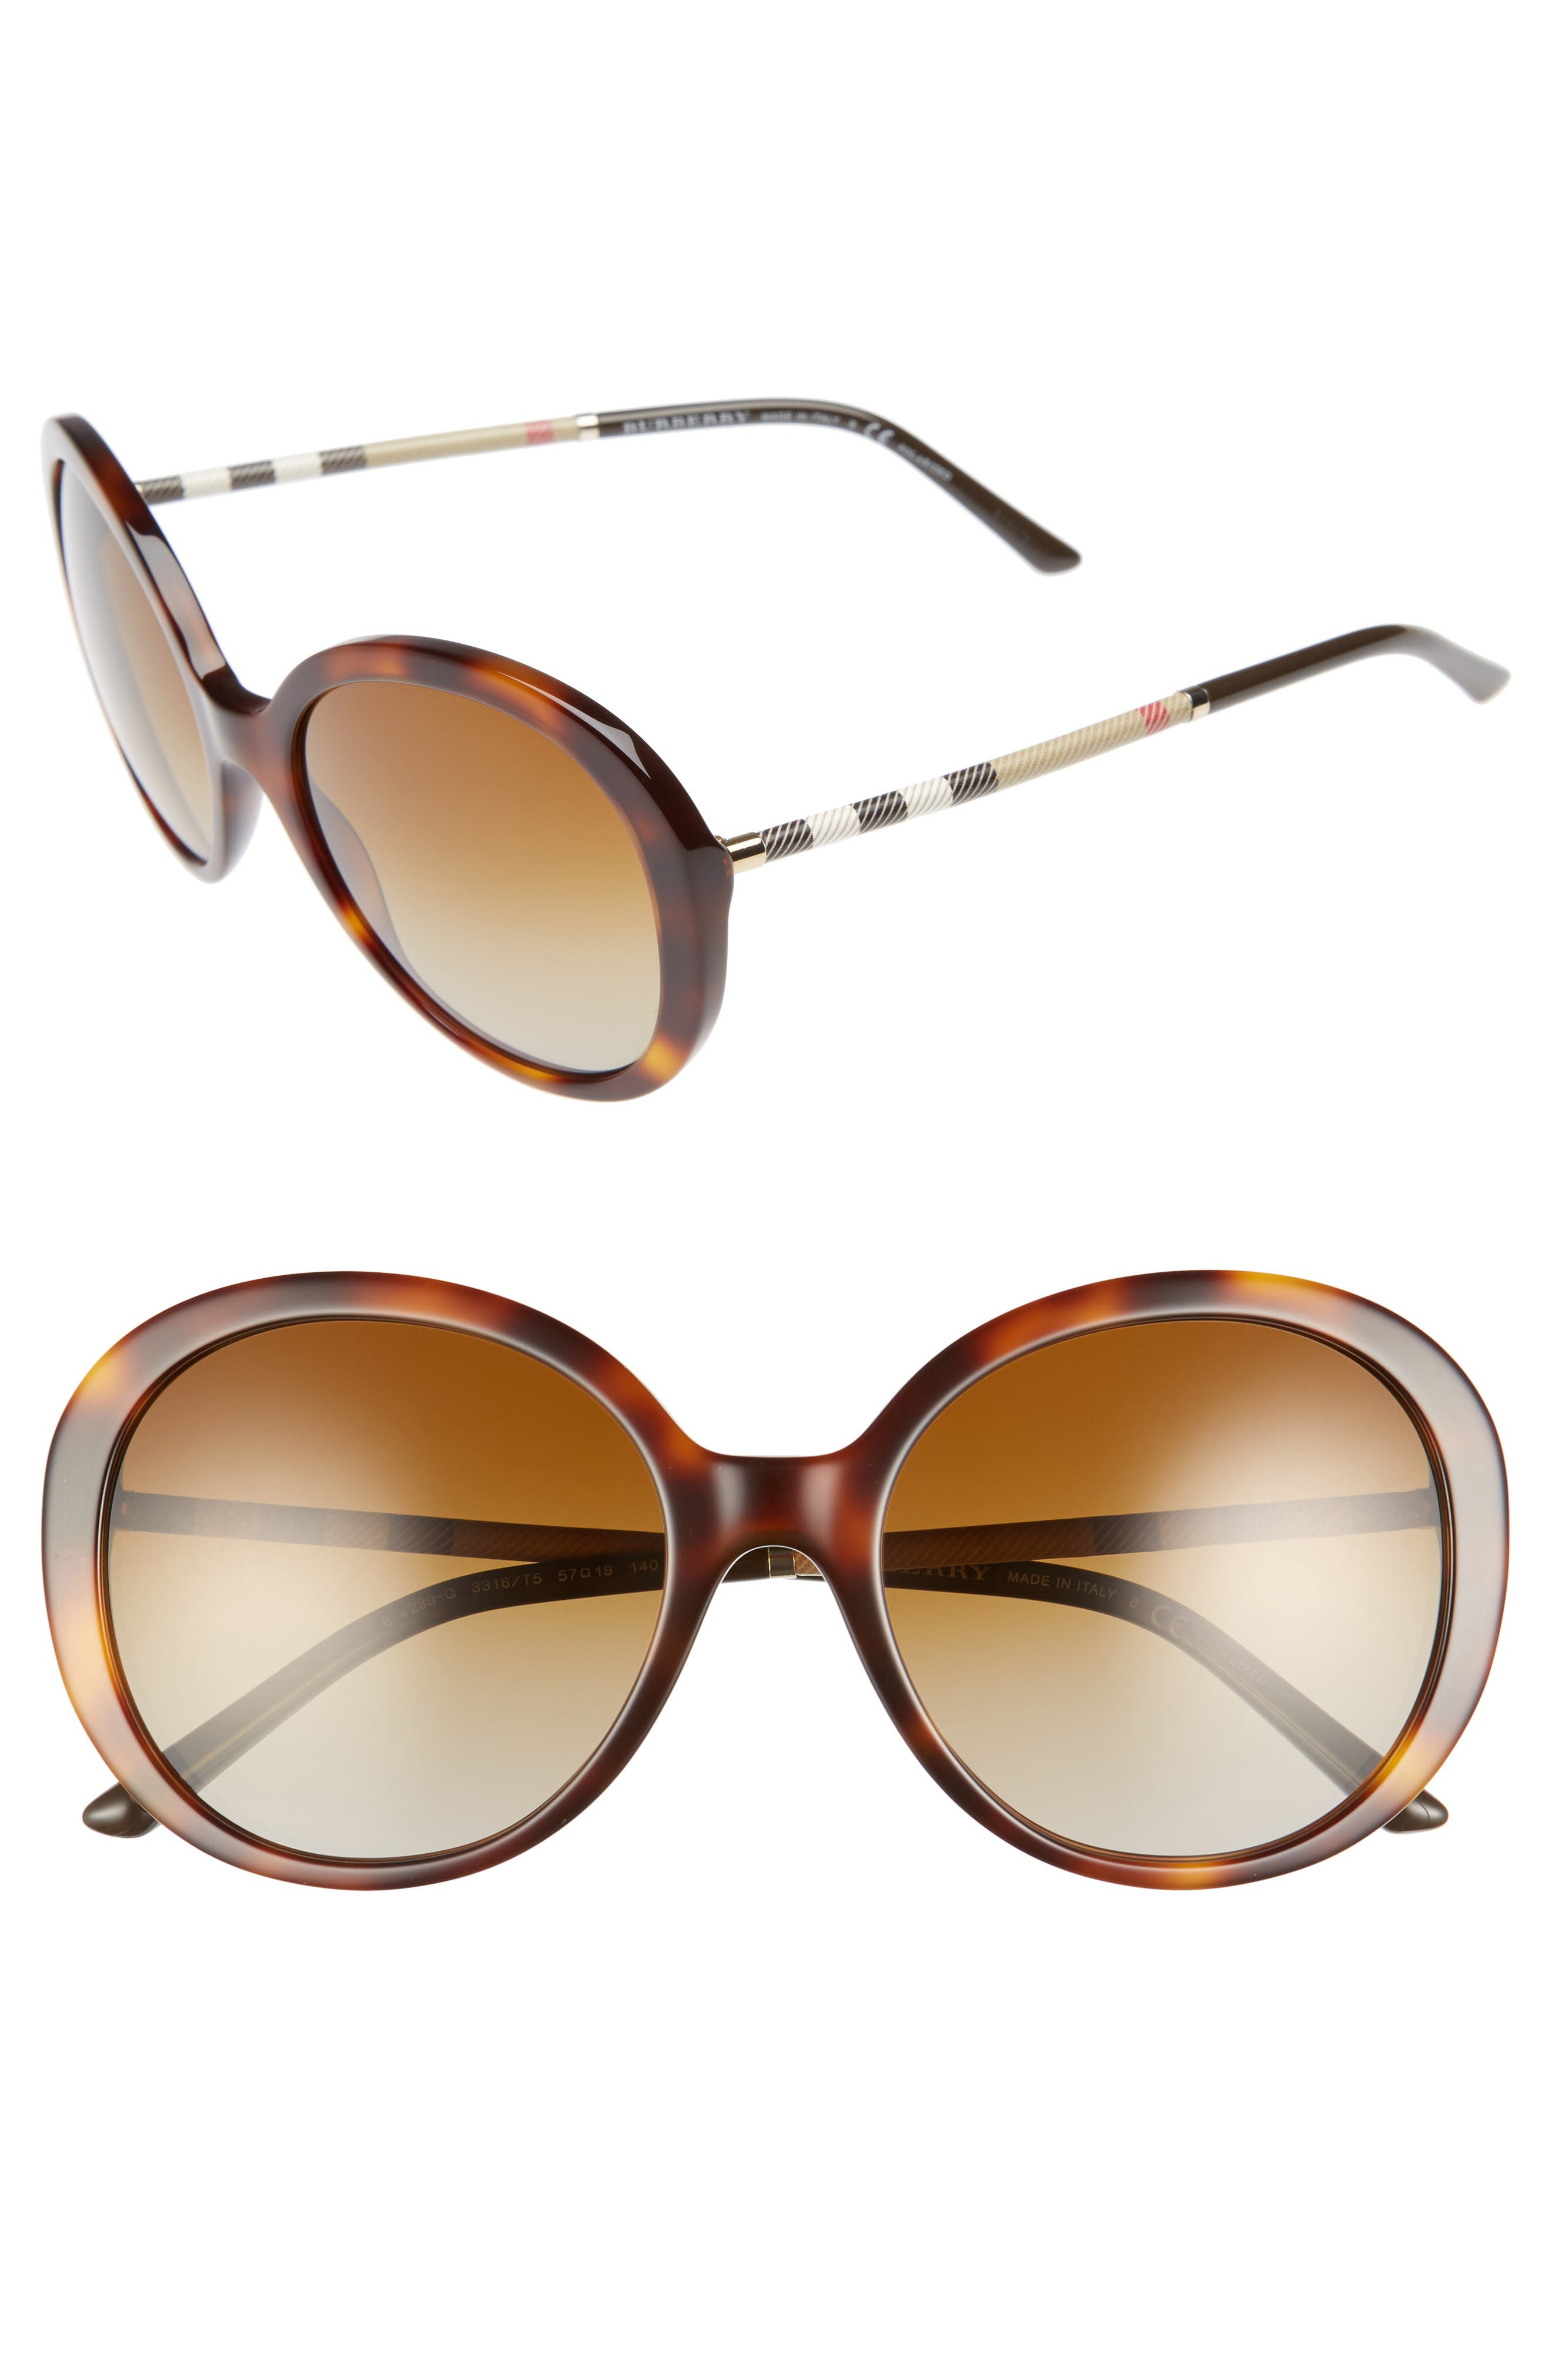 Main Image - Burberry 57mm Check Temple Polarized Round Frame Sunglasses